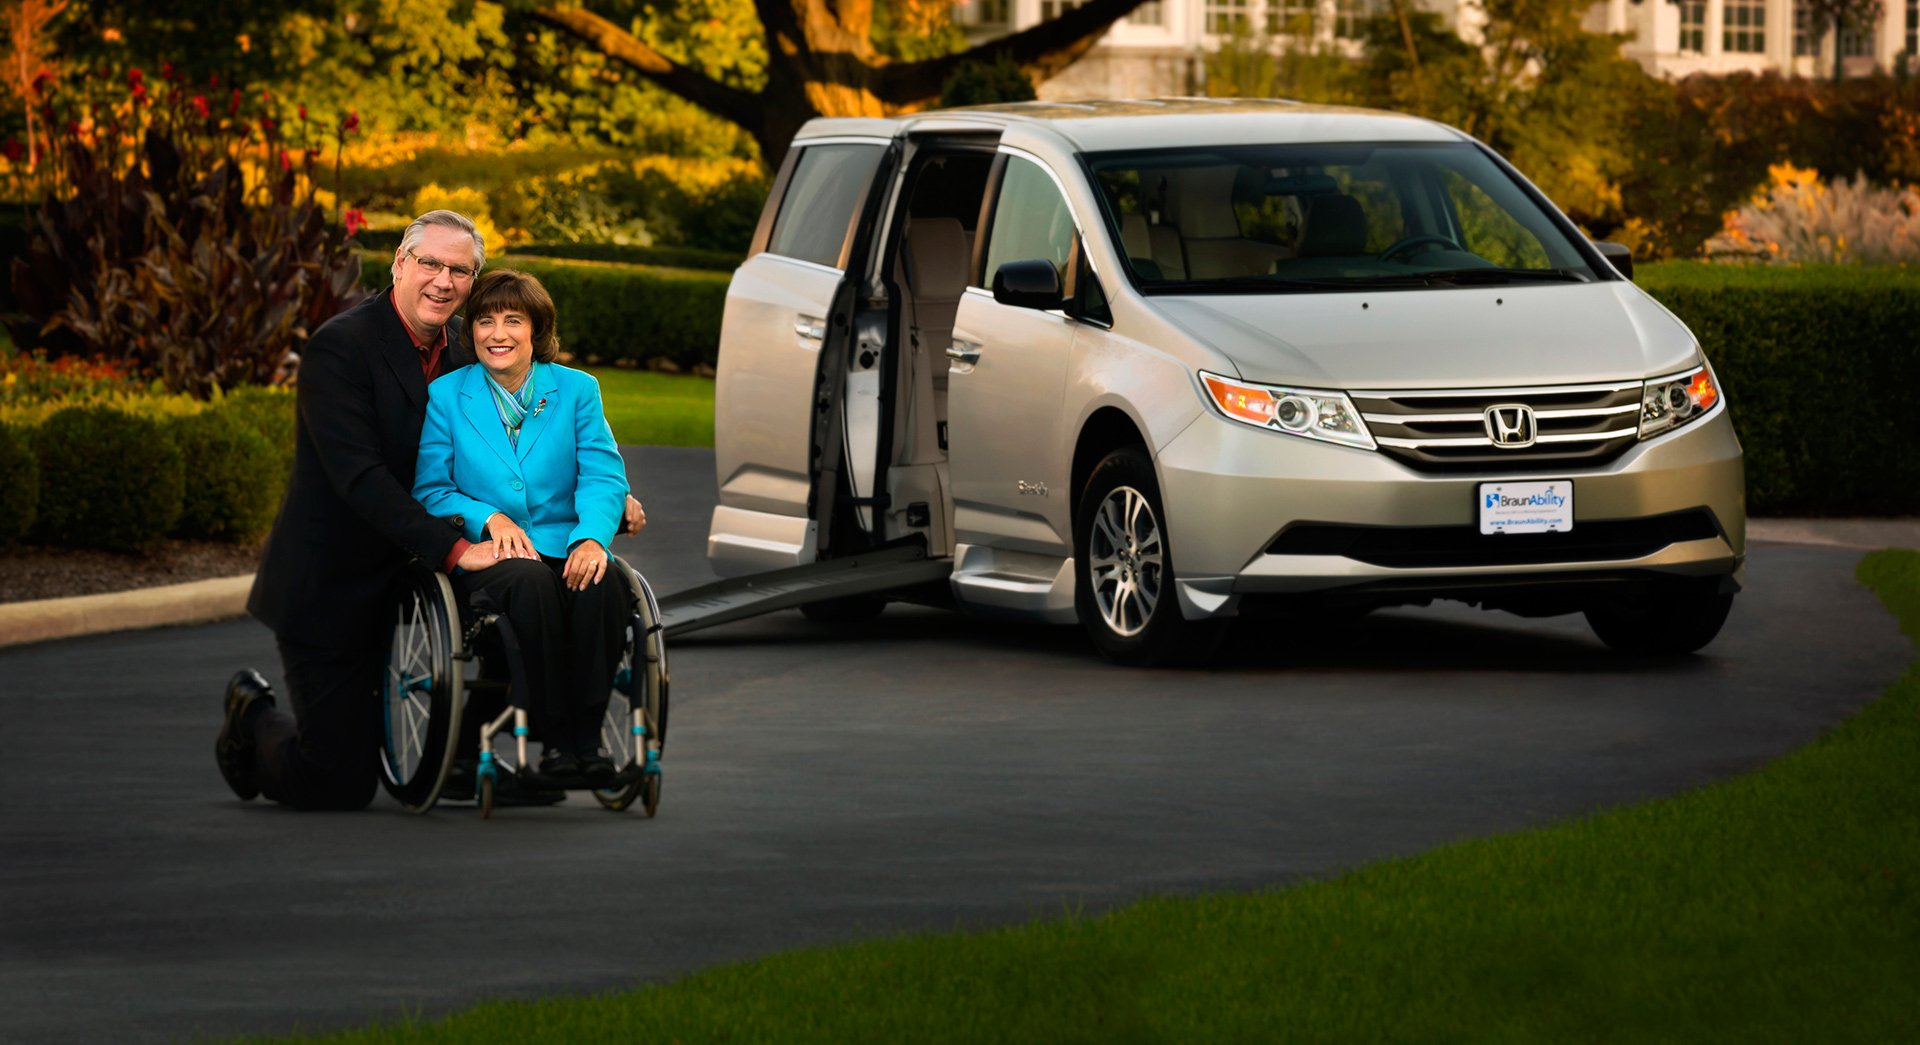 Inter-ability Husband and Wife Next to Wheelchair Van